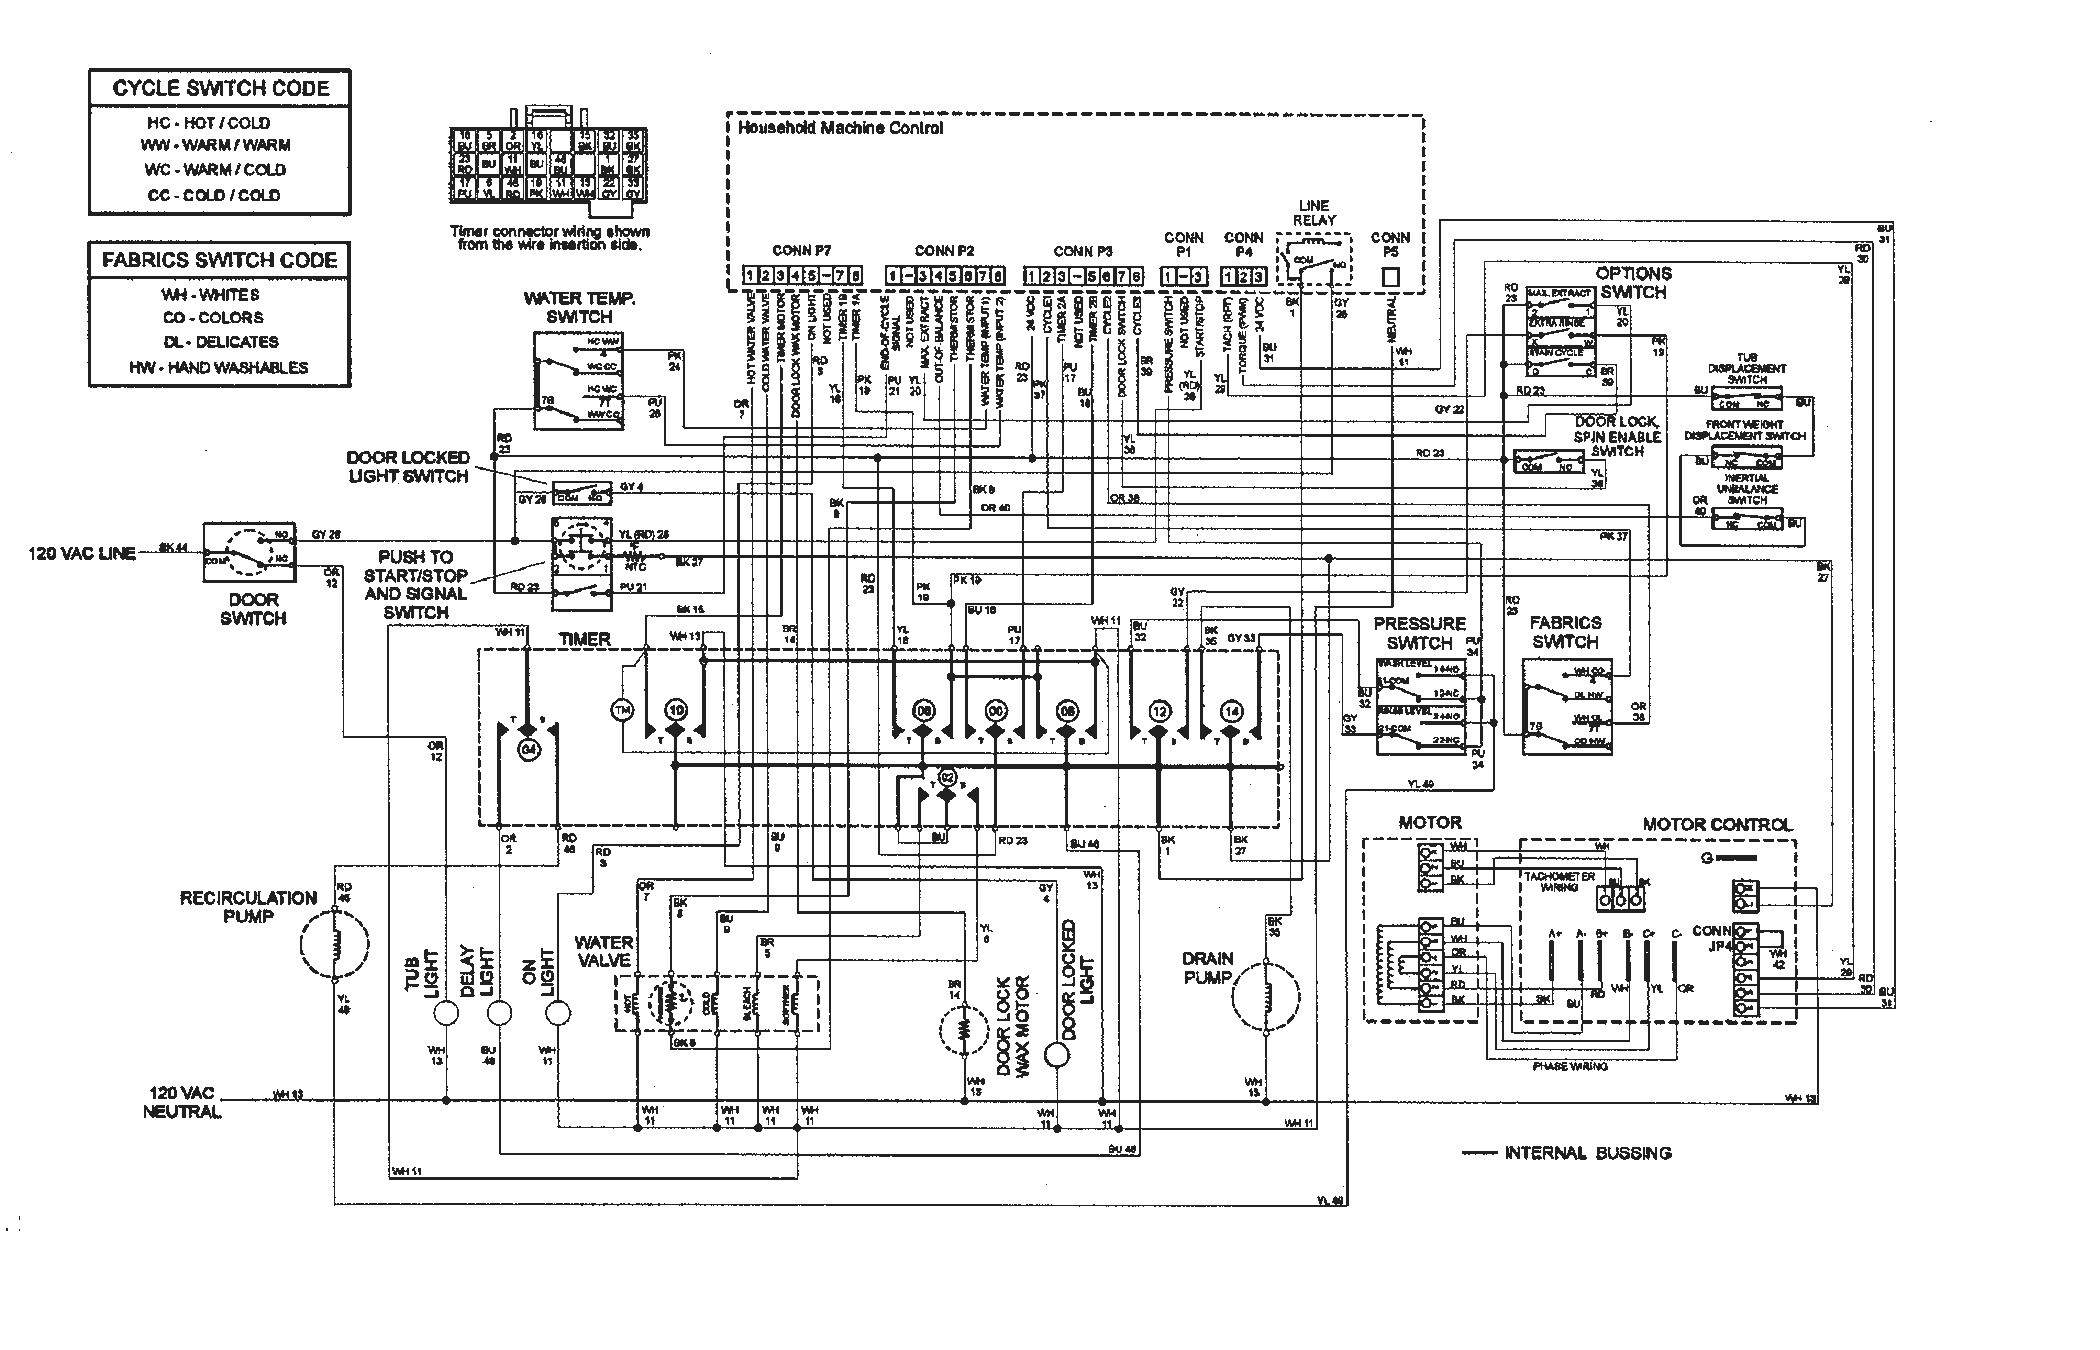 Parts Diagram Maytag Dryer Wiring Diagram from i0.wp.com